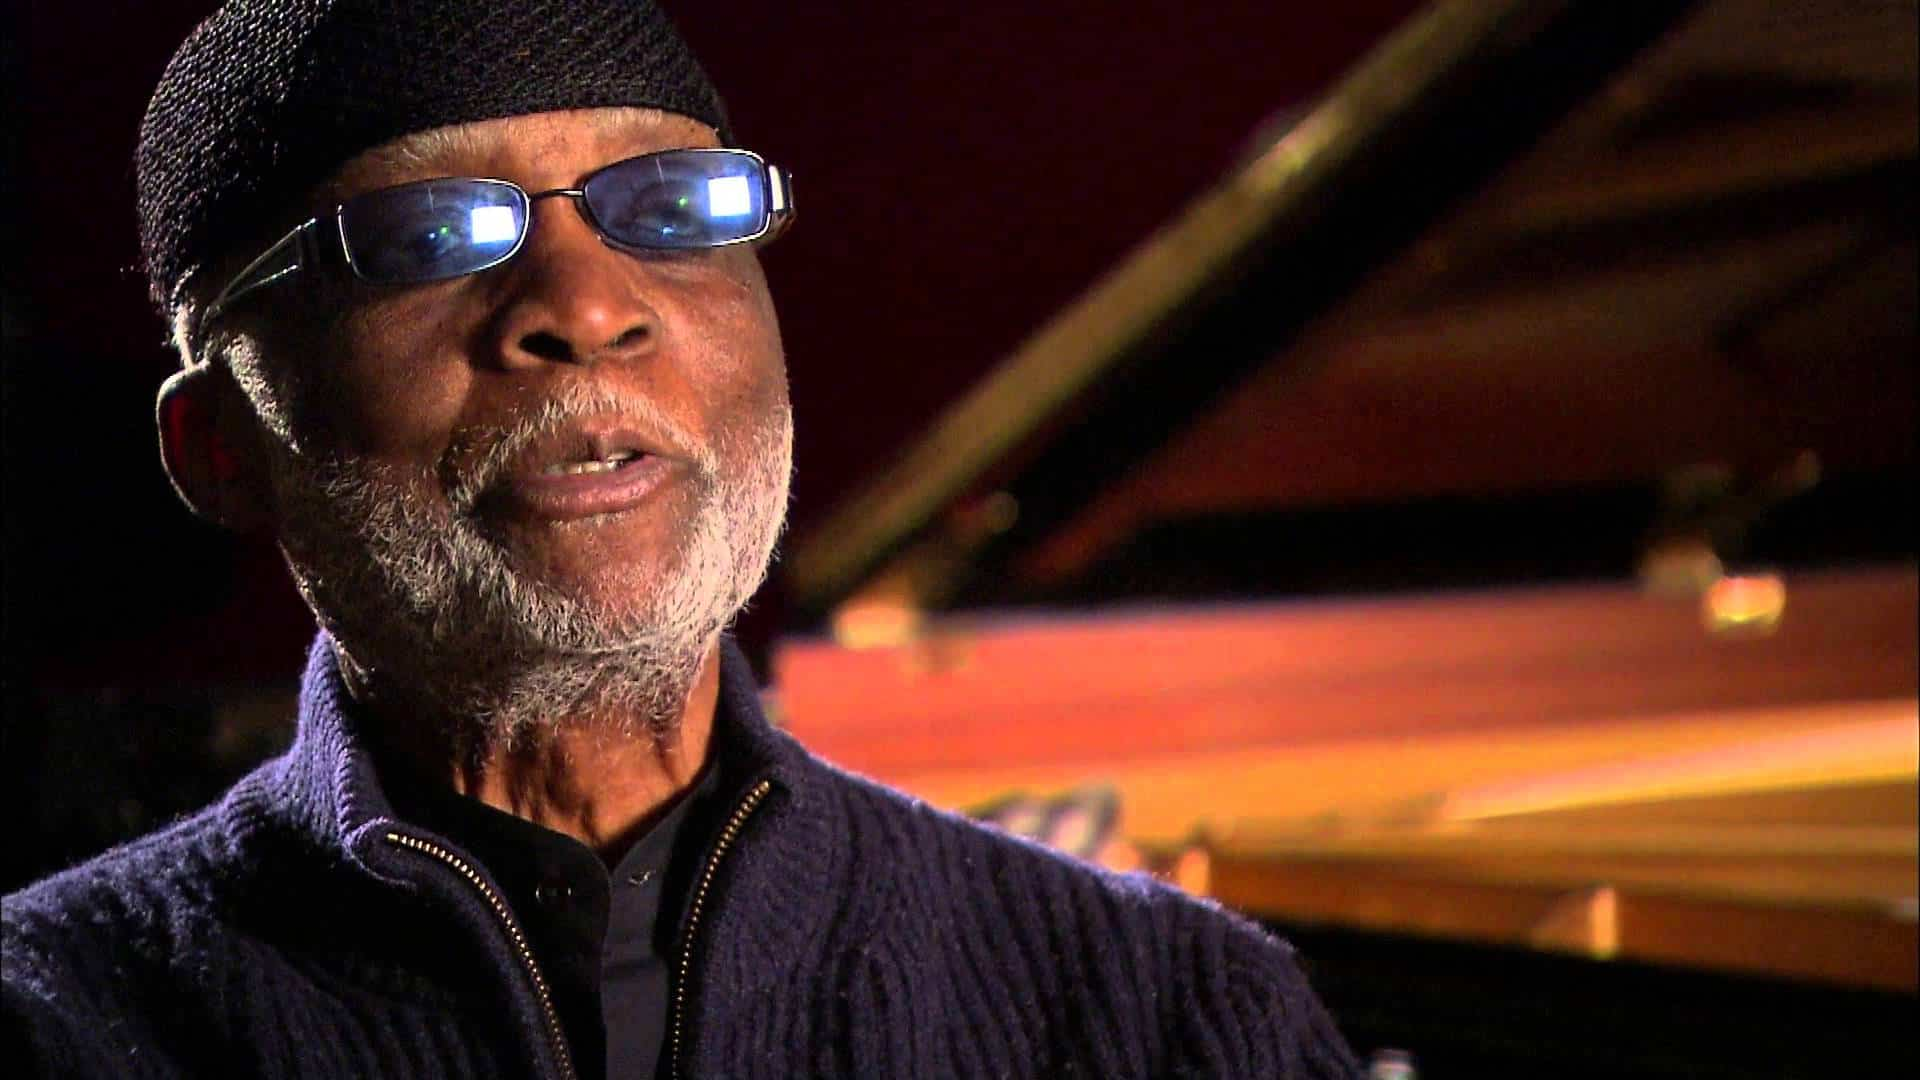 If you don&#39;t know <b>Ahmad Jamal&#39;s</b> music, you&#39;ve got to check him out. - play_your_brand_like_music_3_ahmad_jamal